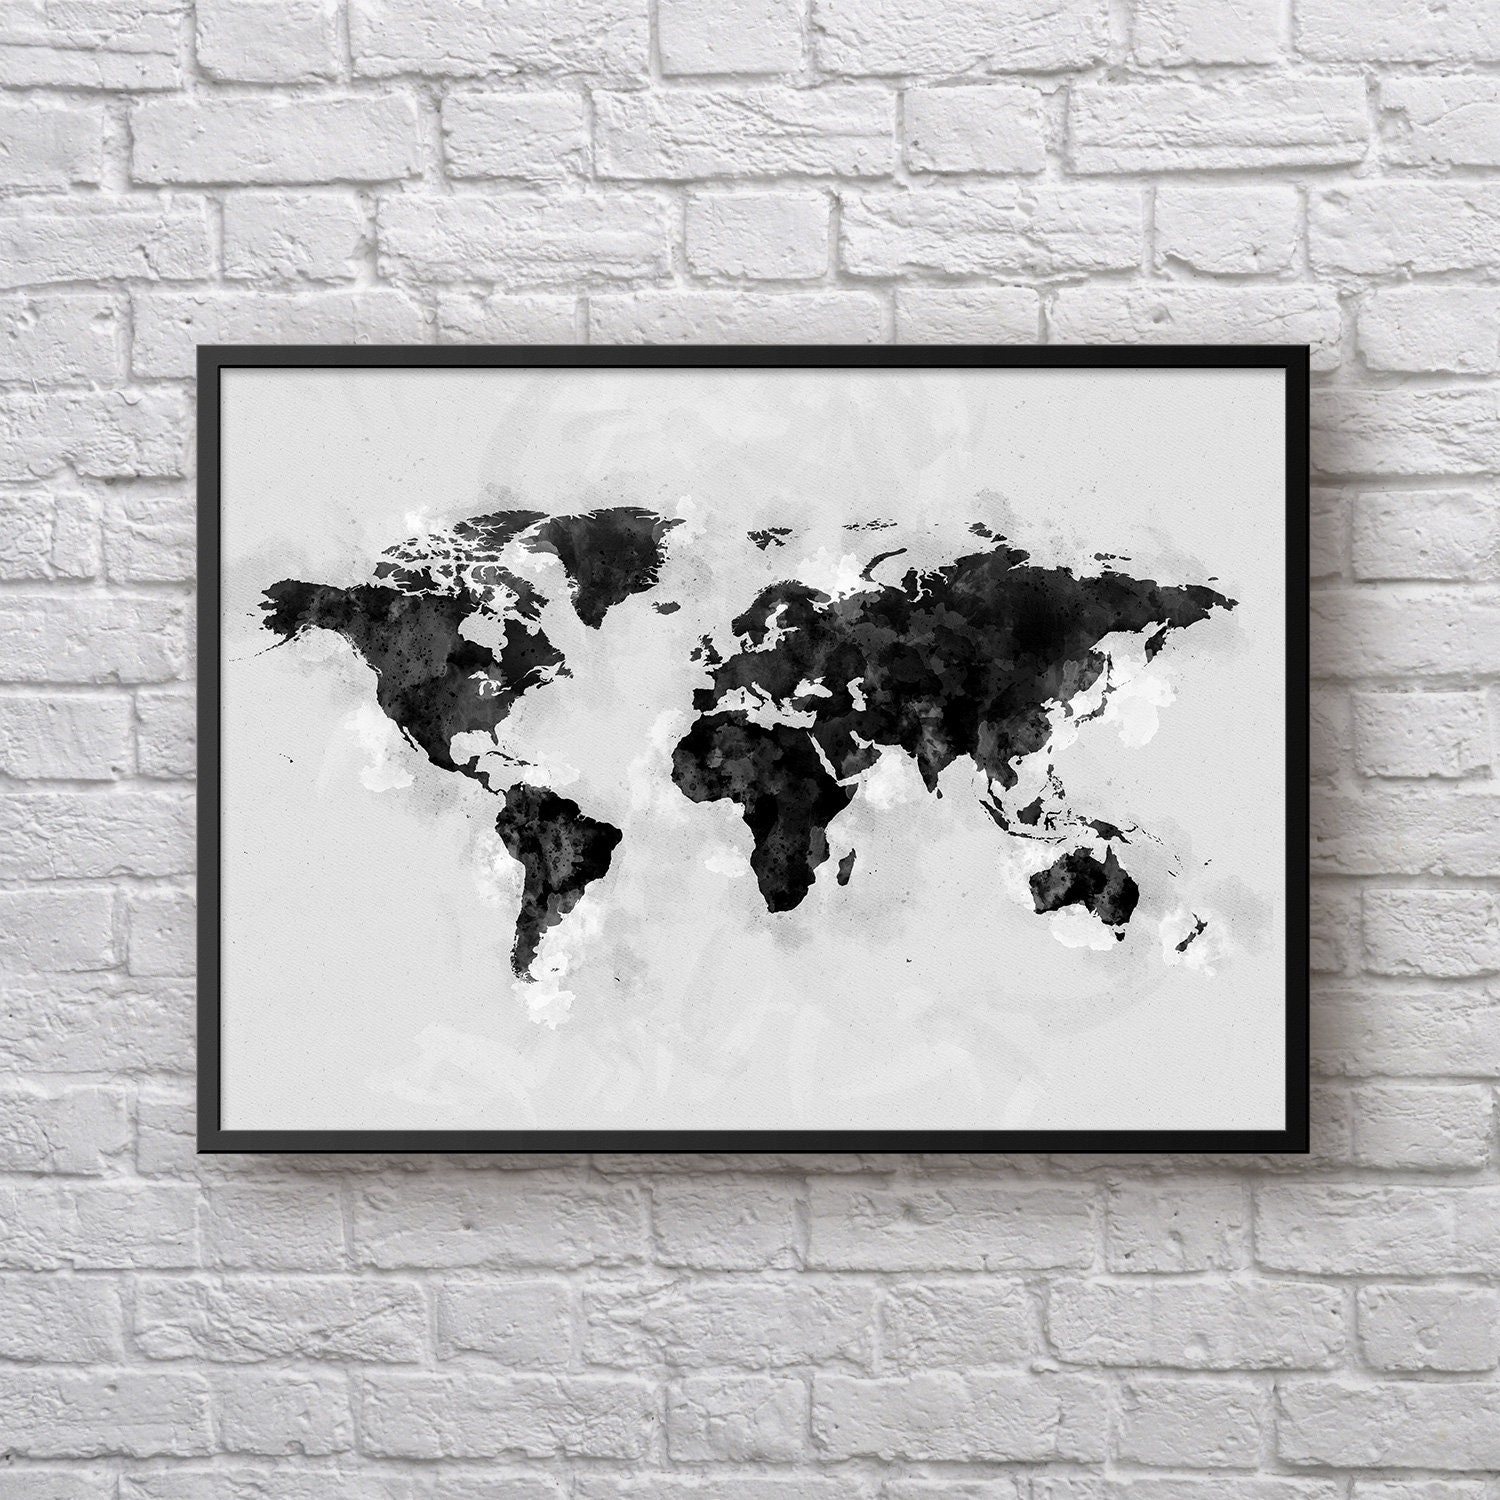 World map poster black white watercolor world map travel map world map poster black white watercolor world map travel map monochrome world map wall art large world map home decor office poster gumiabroncs Choice Image